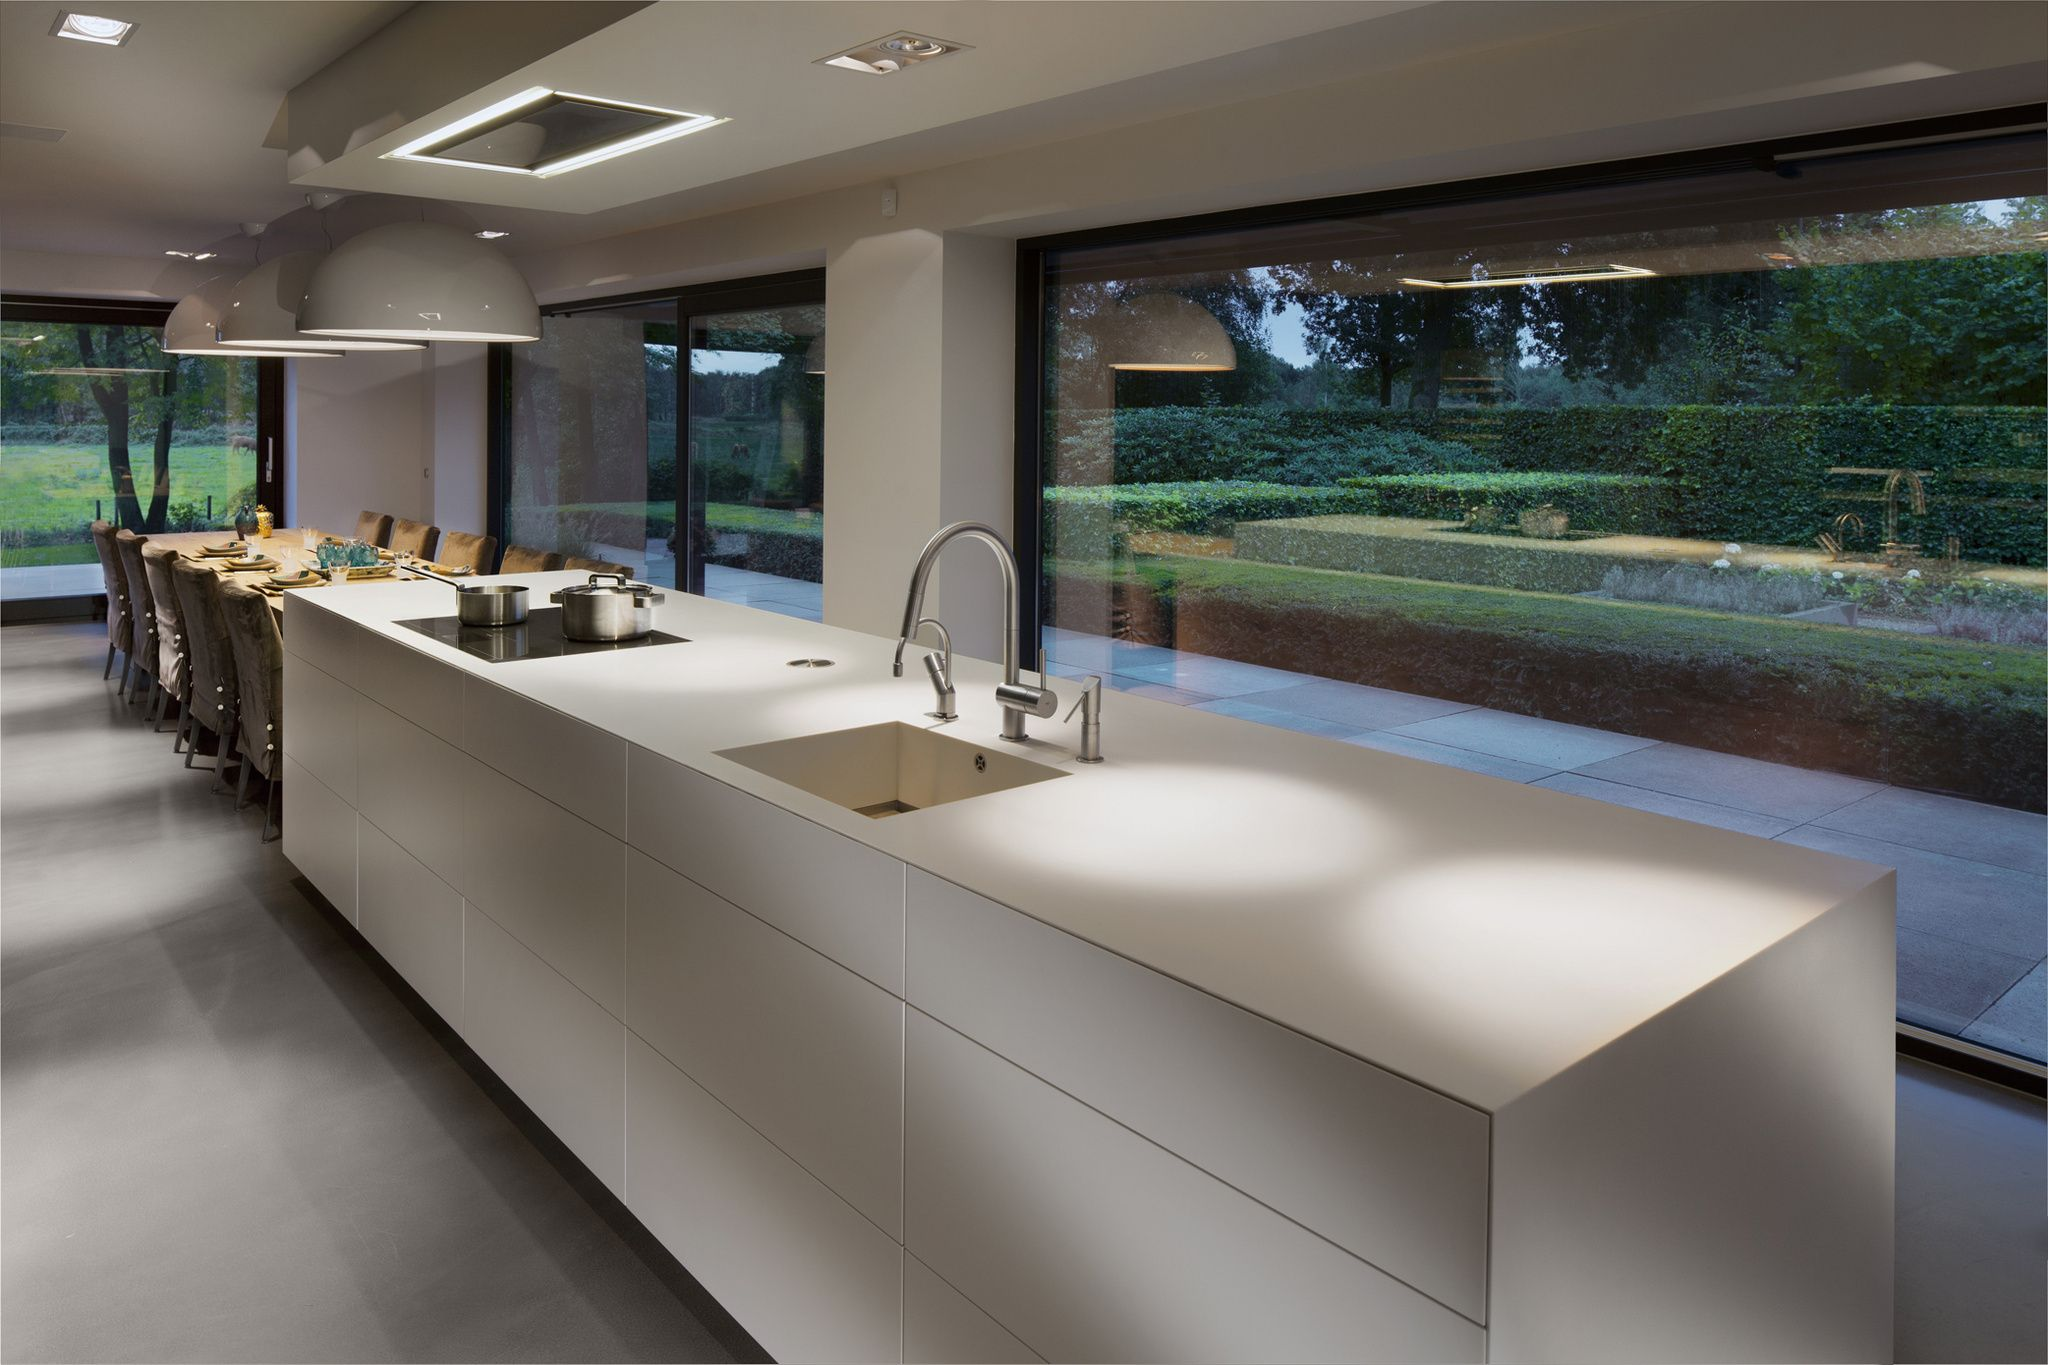 Culimaat high end kitchens interiors italiaanse keukens en